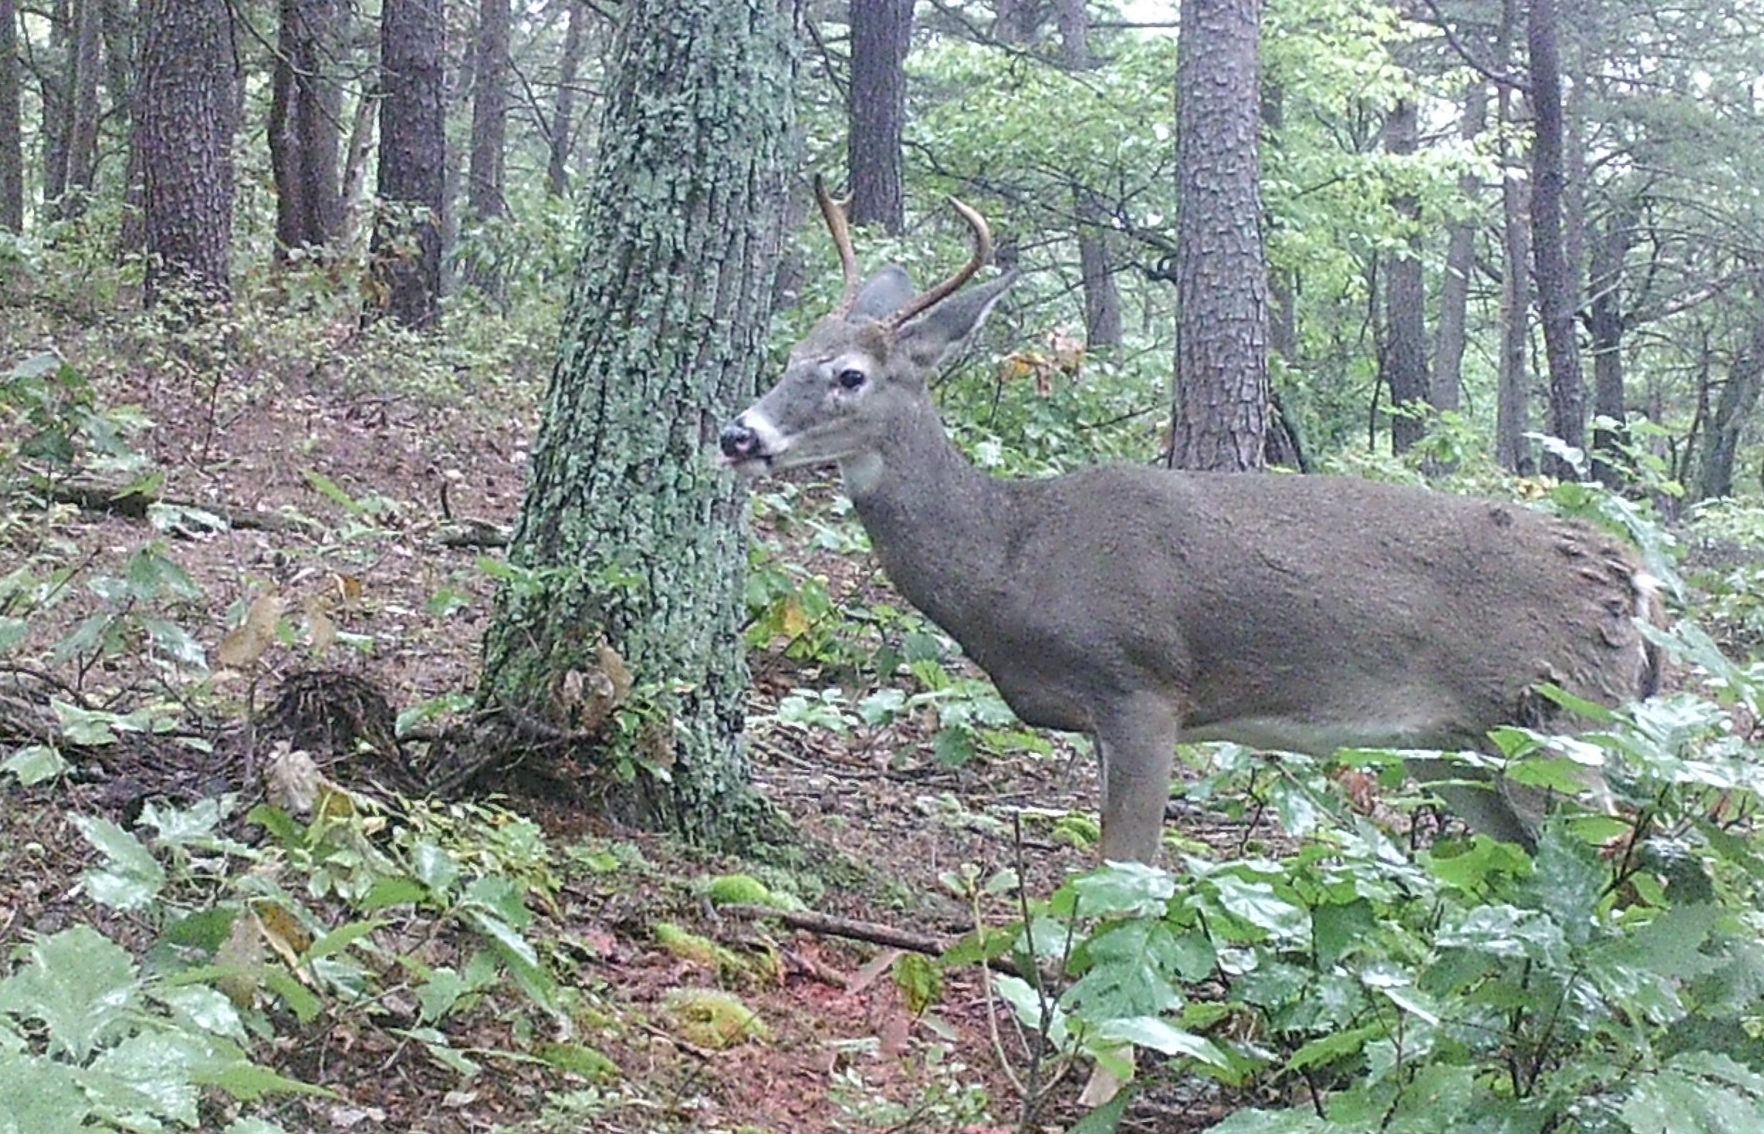 More Pennsylvania deer near Maryland confirmed with